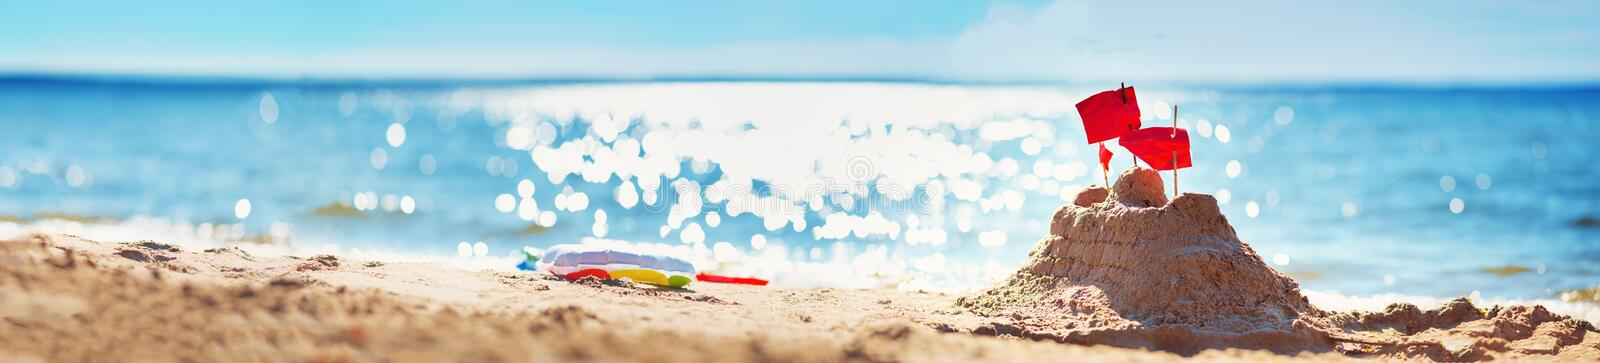 Sandcastle on the sea in summertime royalty free stock photo